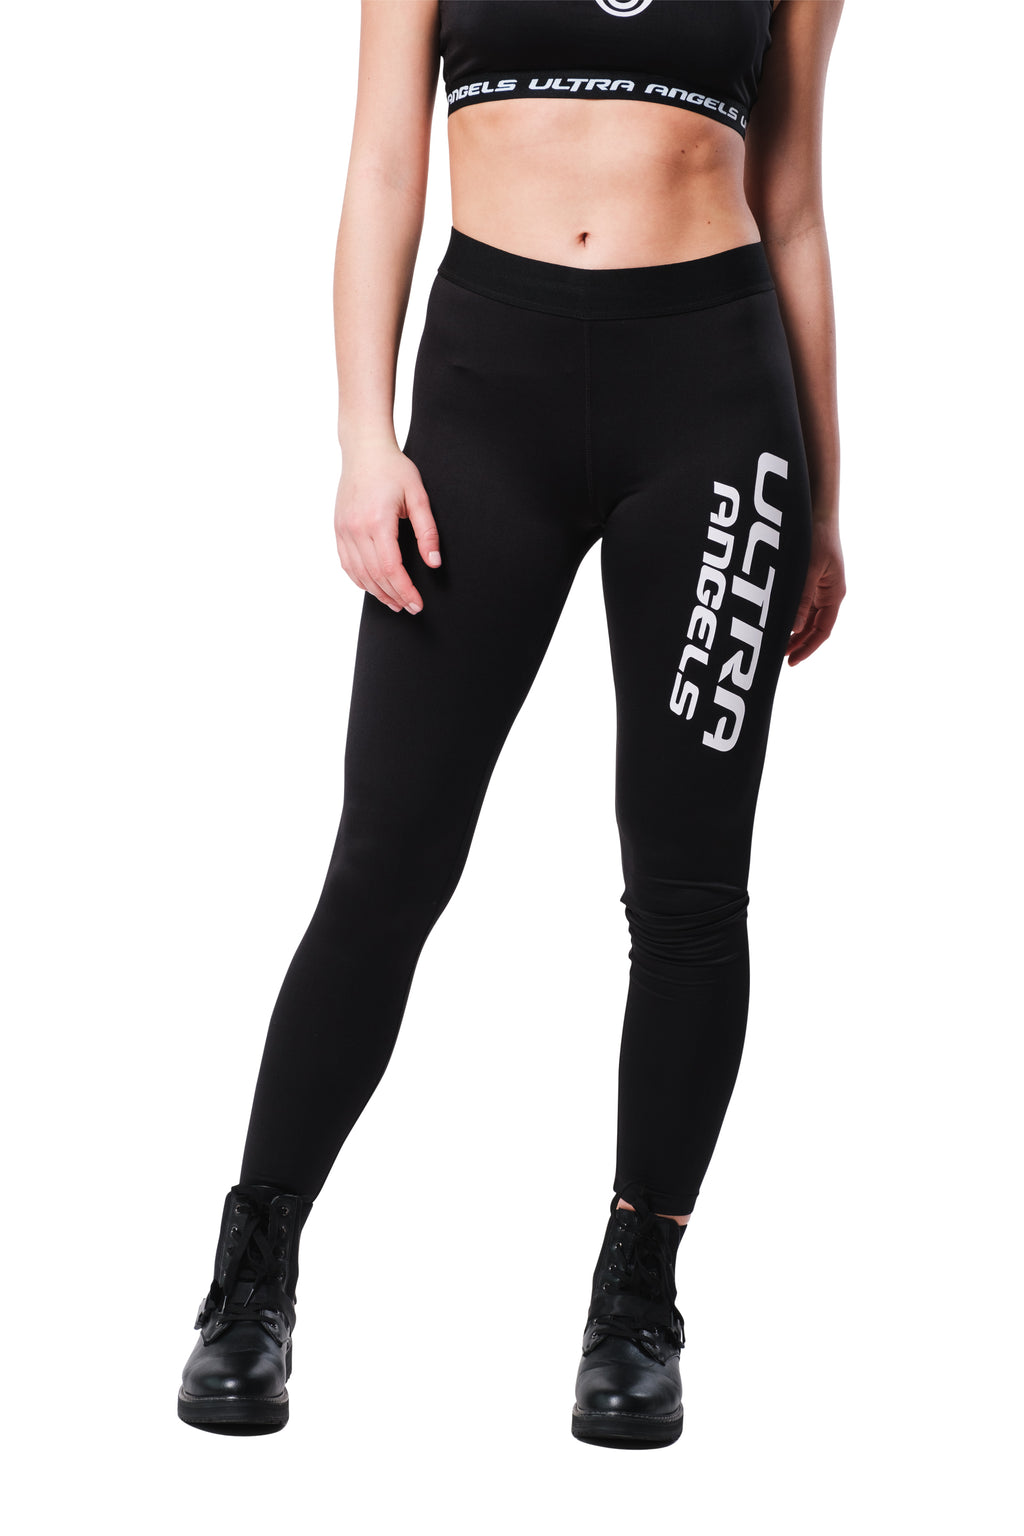 Ultra Angels Leggings